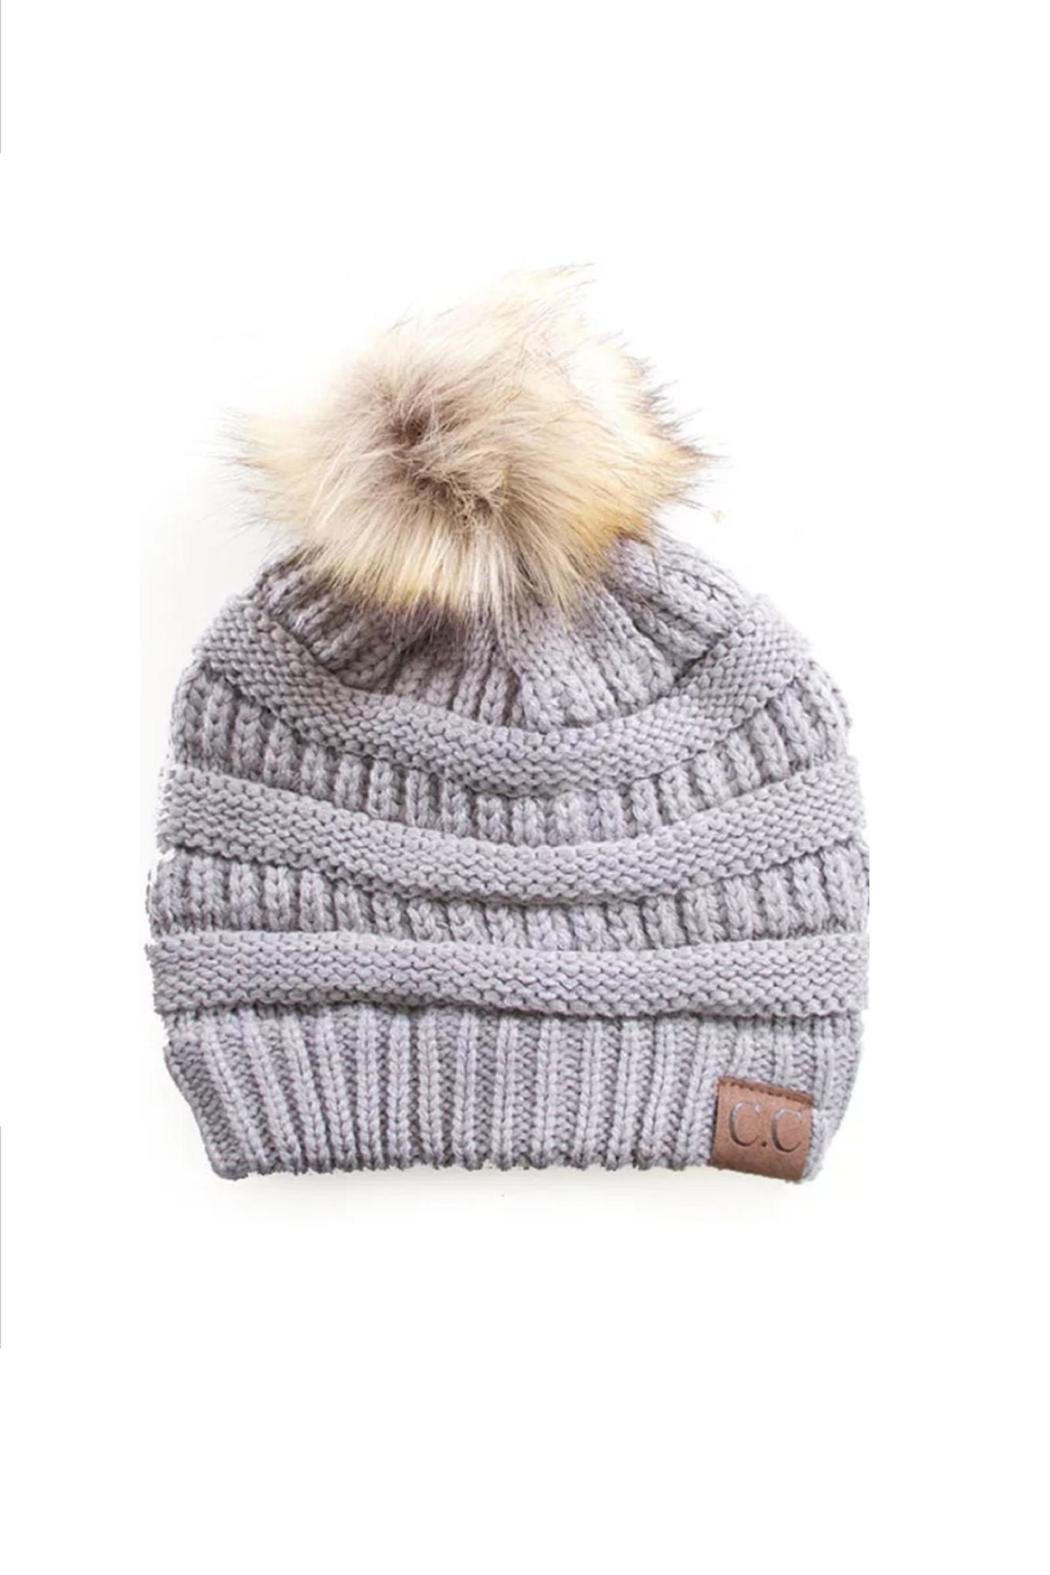 b272b13015340 C.C Beanie The Janet Beanie from Minneapolis by StyleTrolley ...